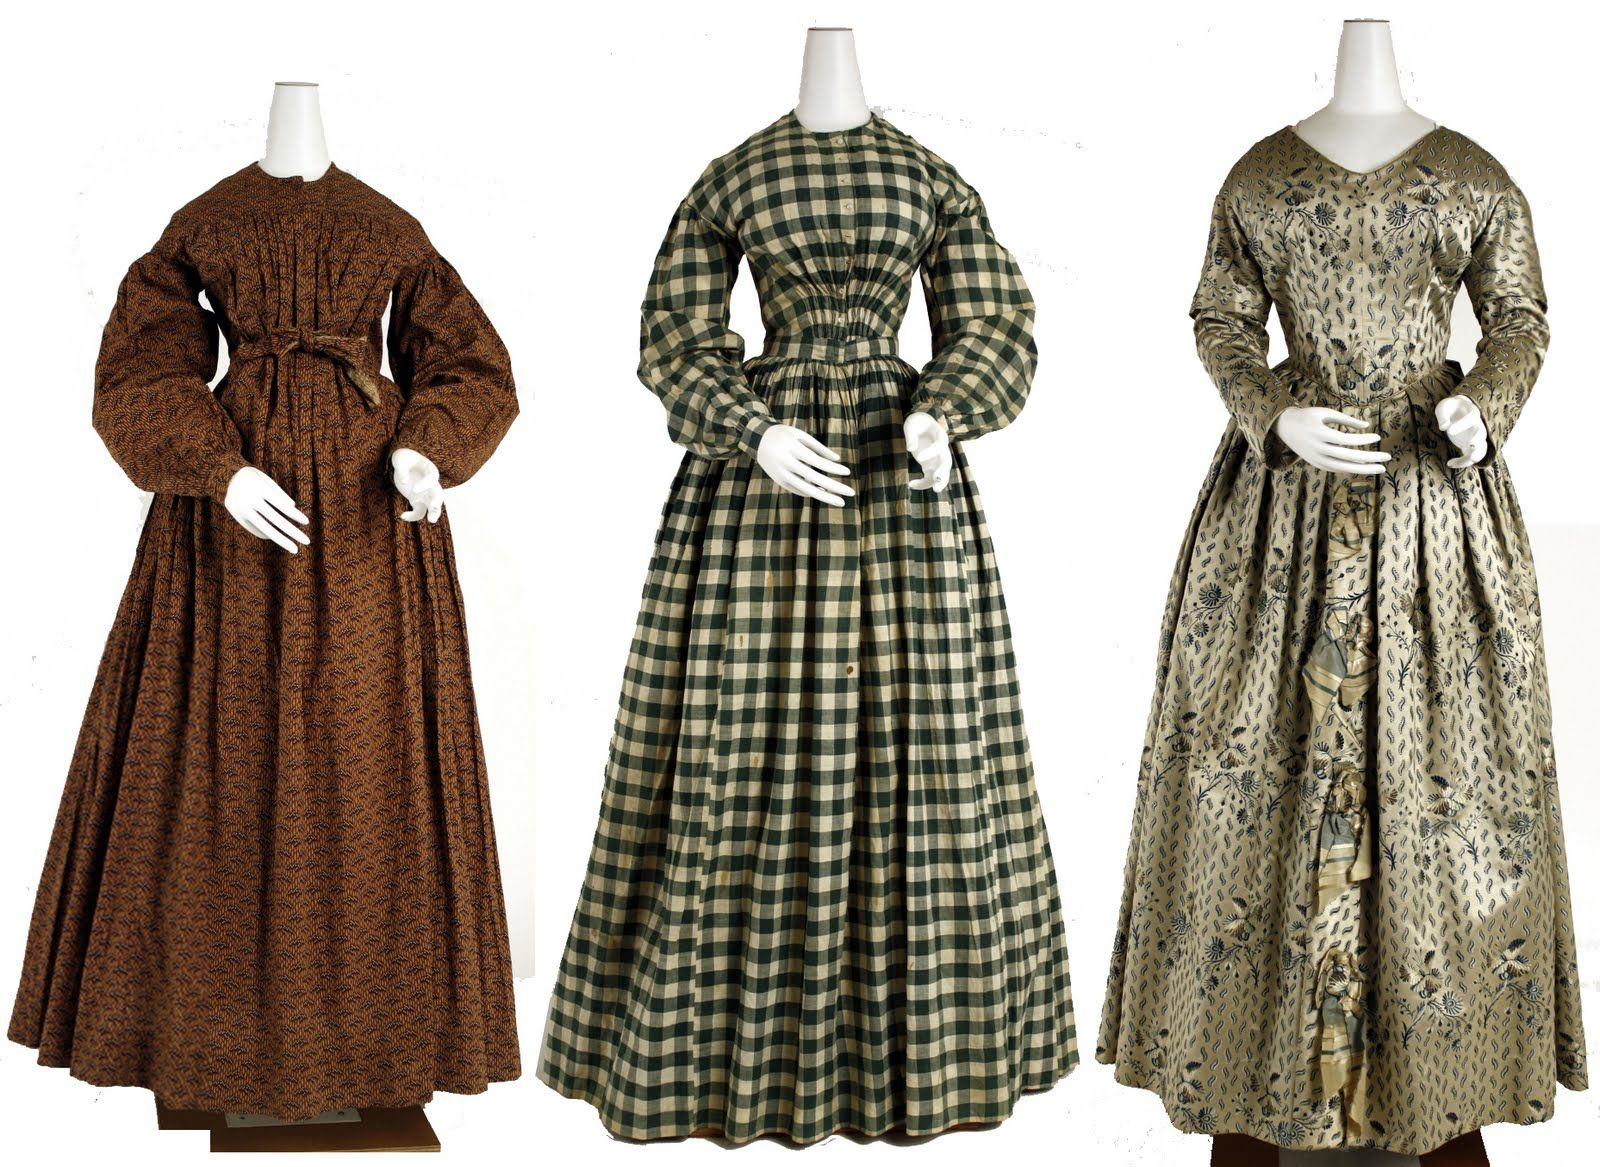 In Search Of Chicken Pot Pie The 1840s Fashionista Dresses Victorian Era Dresses 1840s Day Dress [ 1167 x 1600 Pixel ]